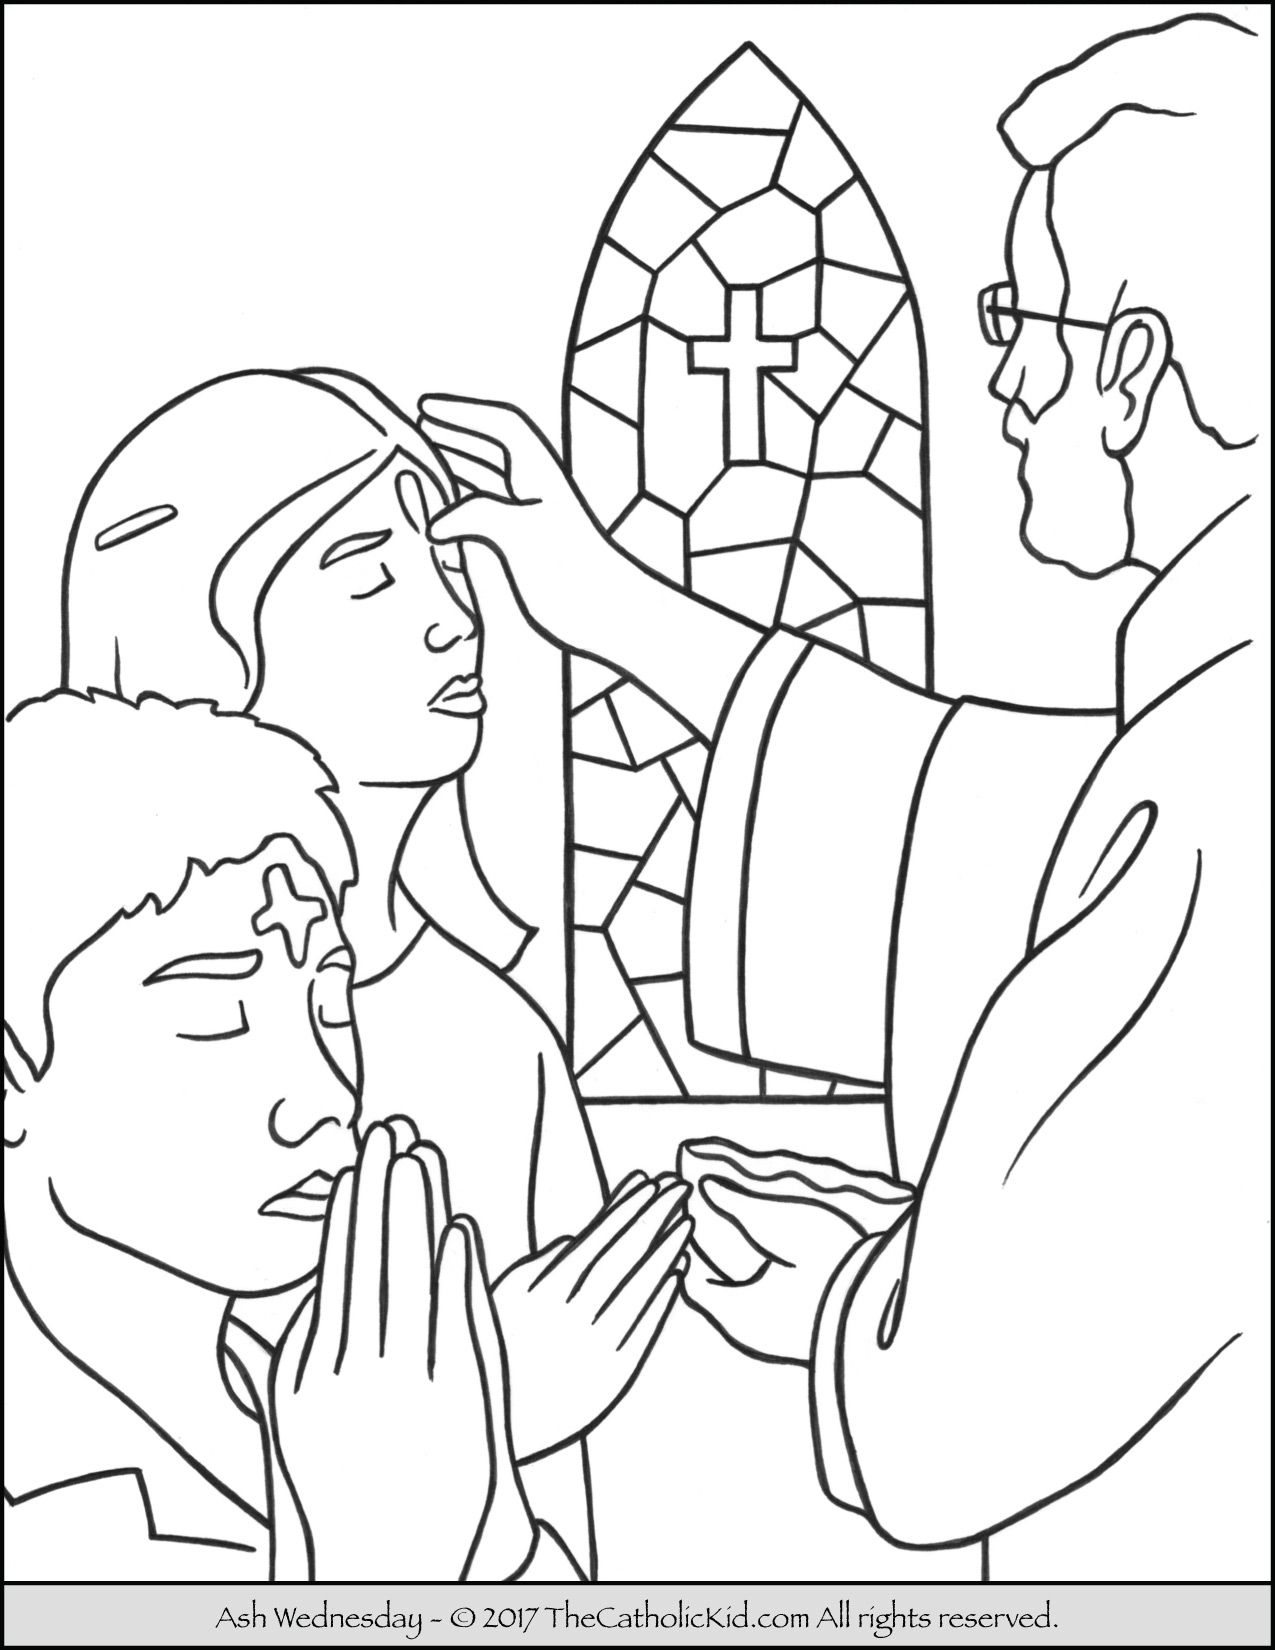 Ash Wednesday Coloring Page Catholic Coloring Pages For Kids